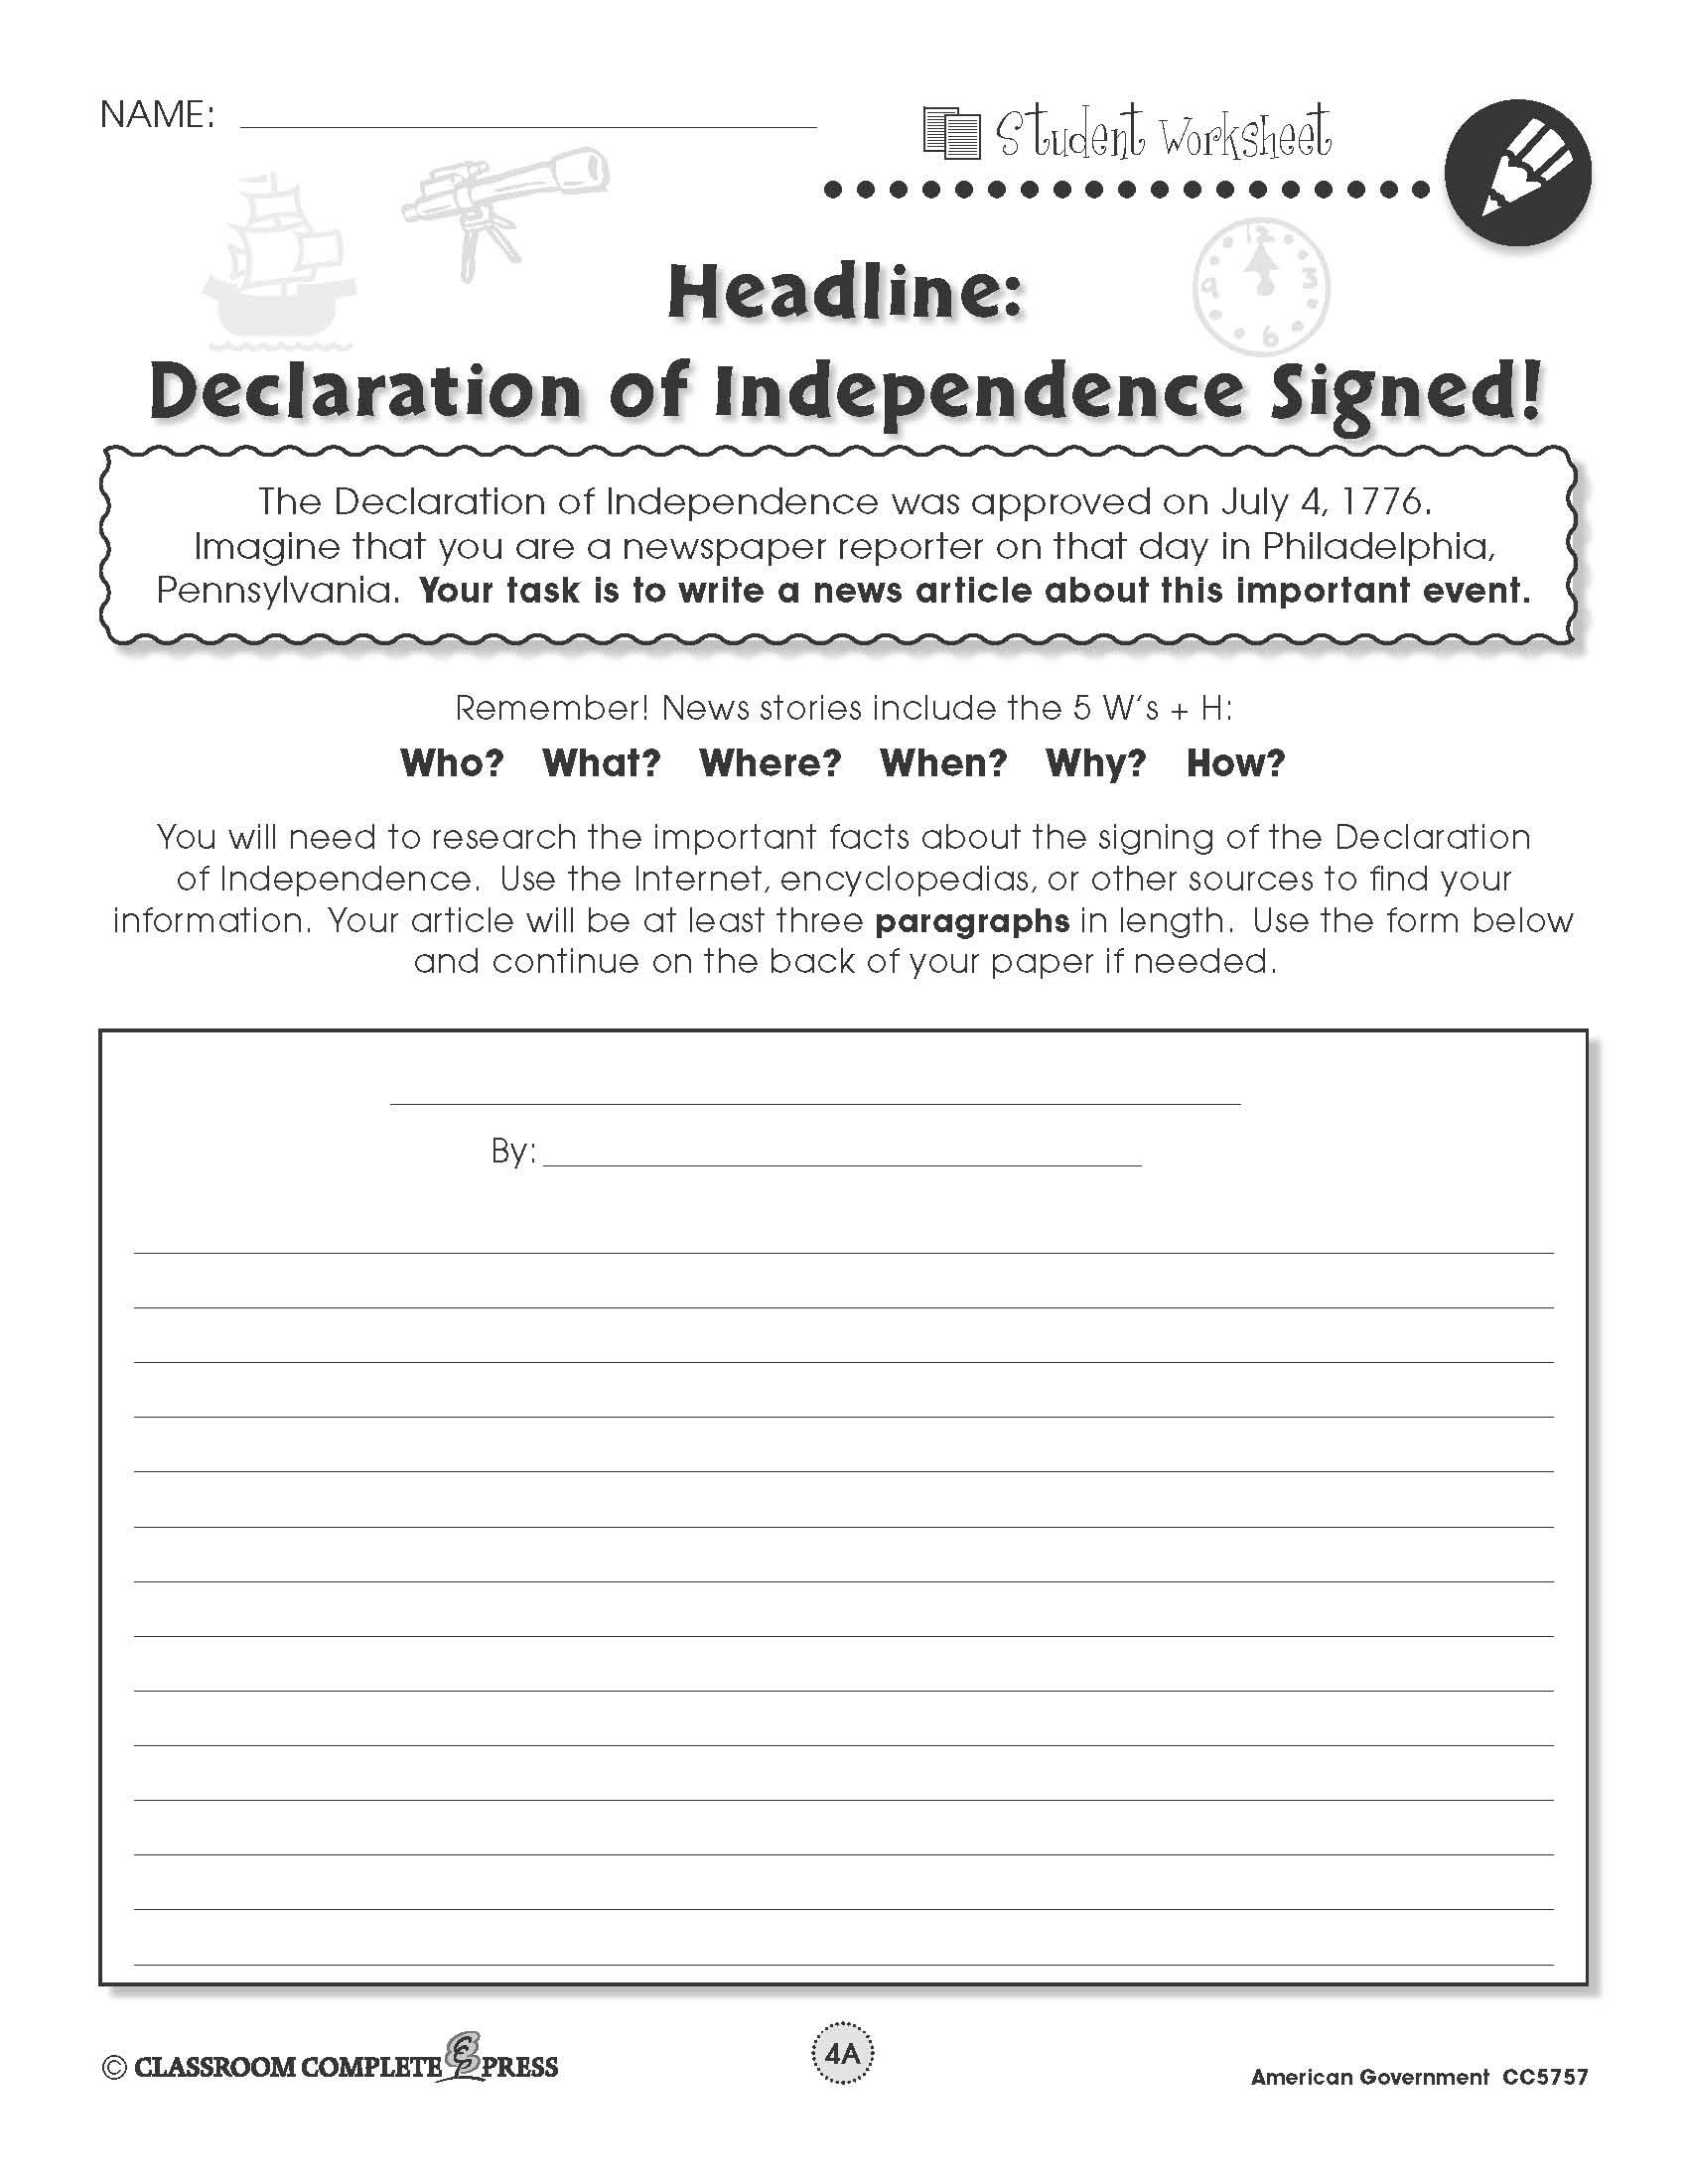 Worksheets Declaration Of Independence Worksheets write a newspaper article about americas signing of the declaration independence in this free activity